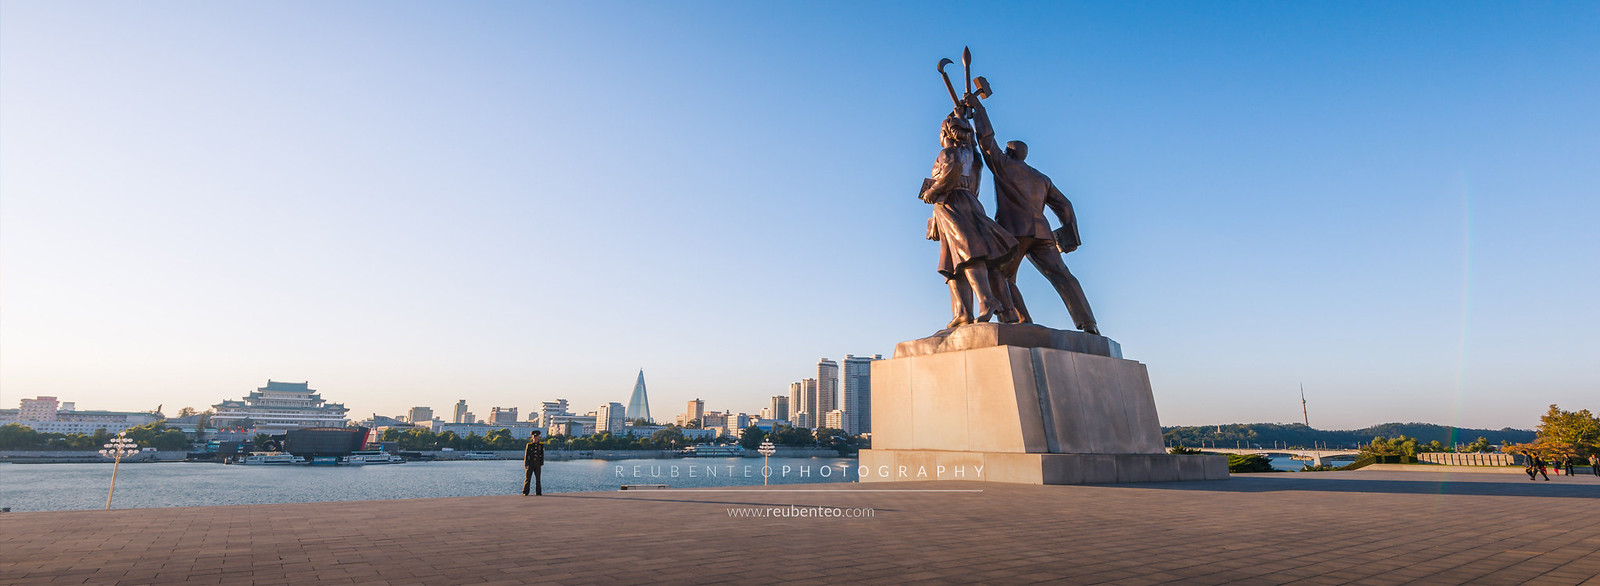 The Juche Tower Statue Overlooking Pyongyang City